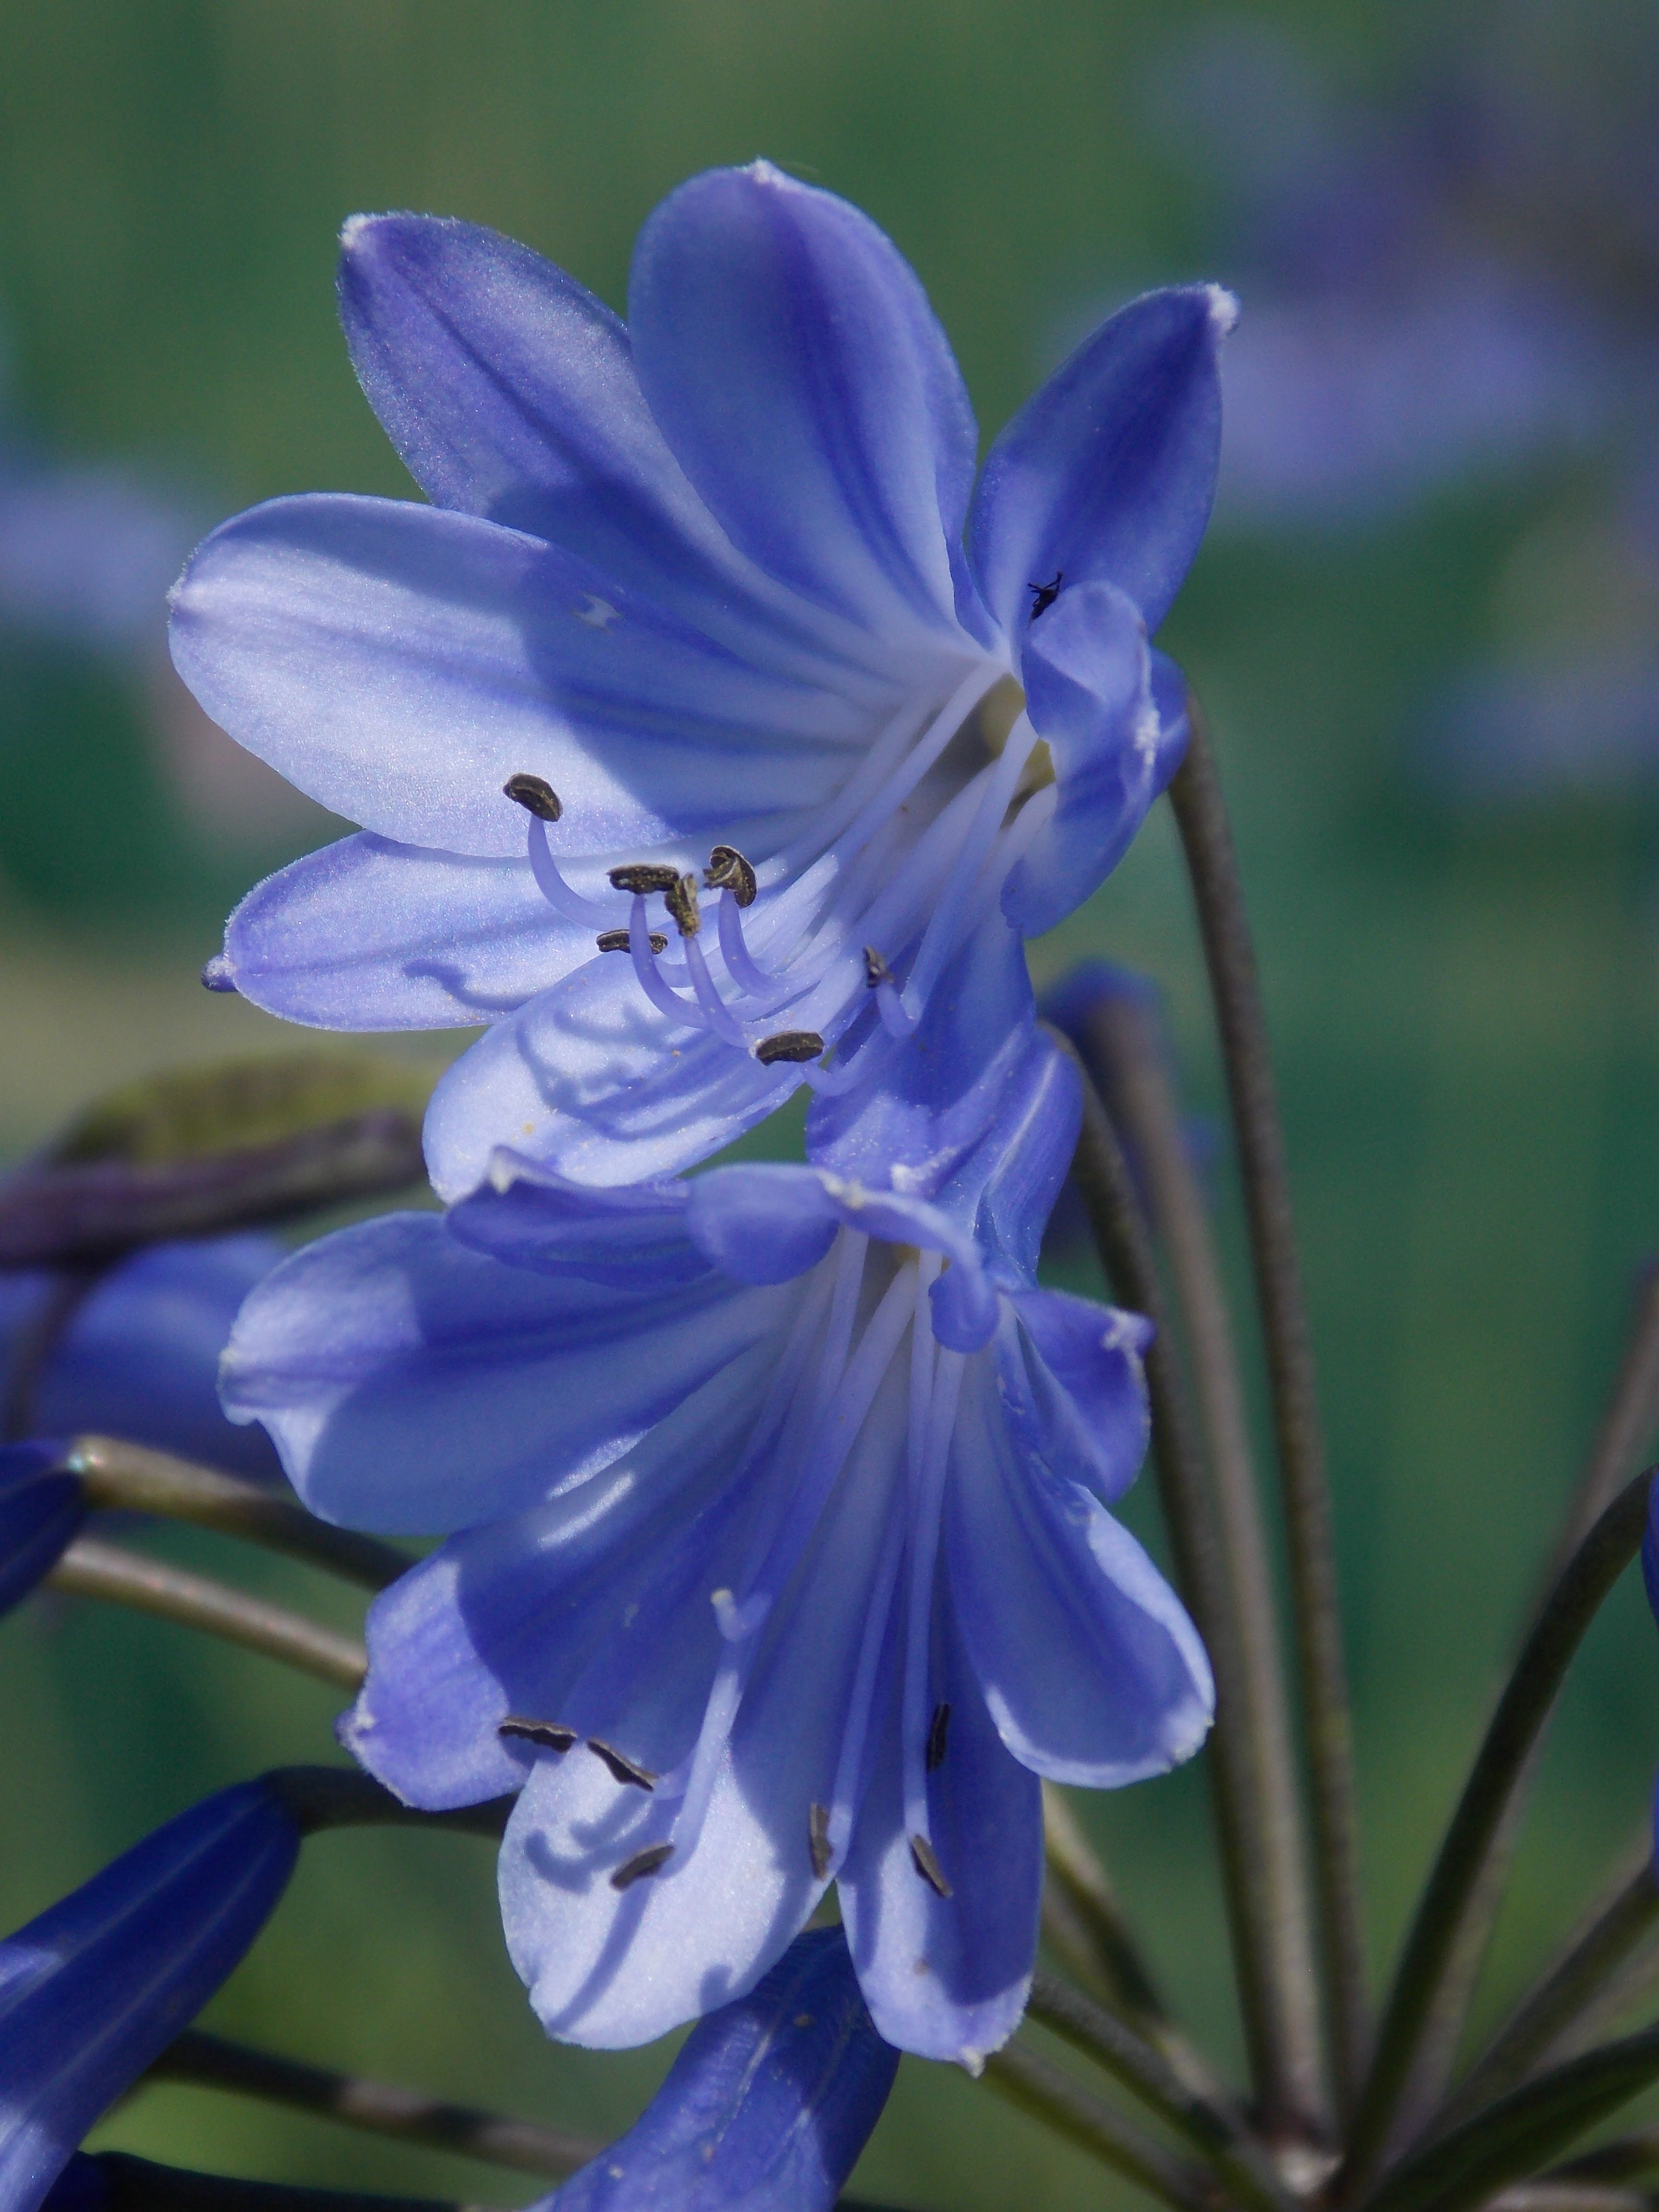 Agapanthus headbourne hybrids blue lily of the nile flower colour agapanthus headbourne hybrids blue lily of the nile flower colour shades of blue other features excellent cut flowers the flowers are followed by izmirmasajfo